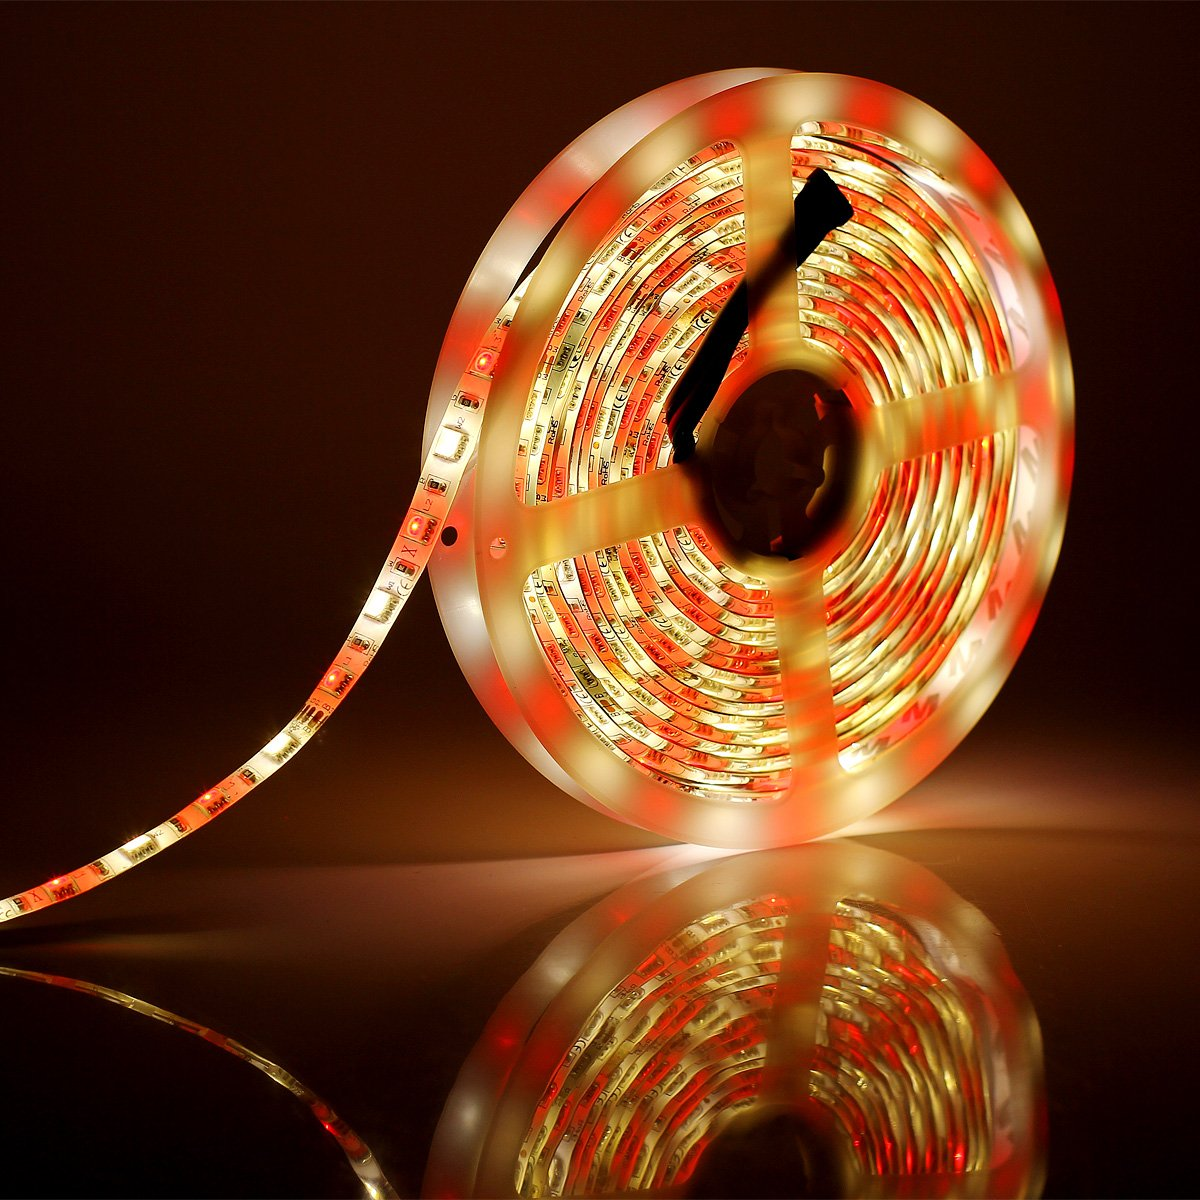 SUPERNIGHT RGBW LED Strip Light RGB Color Changing Rope Lighting with Warm White 3500K Color 16.4ft 300leds 5050 Tape Light (RGB + Warm White) by SUPERNIGHT (Image #8)